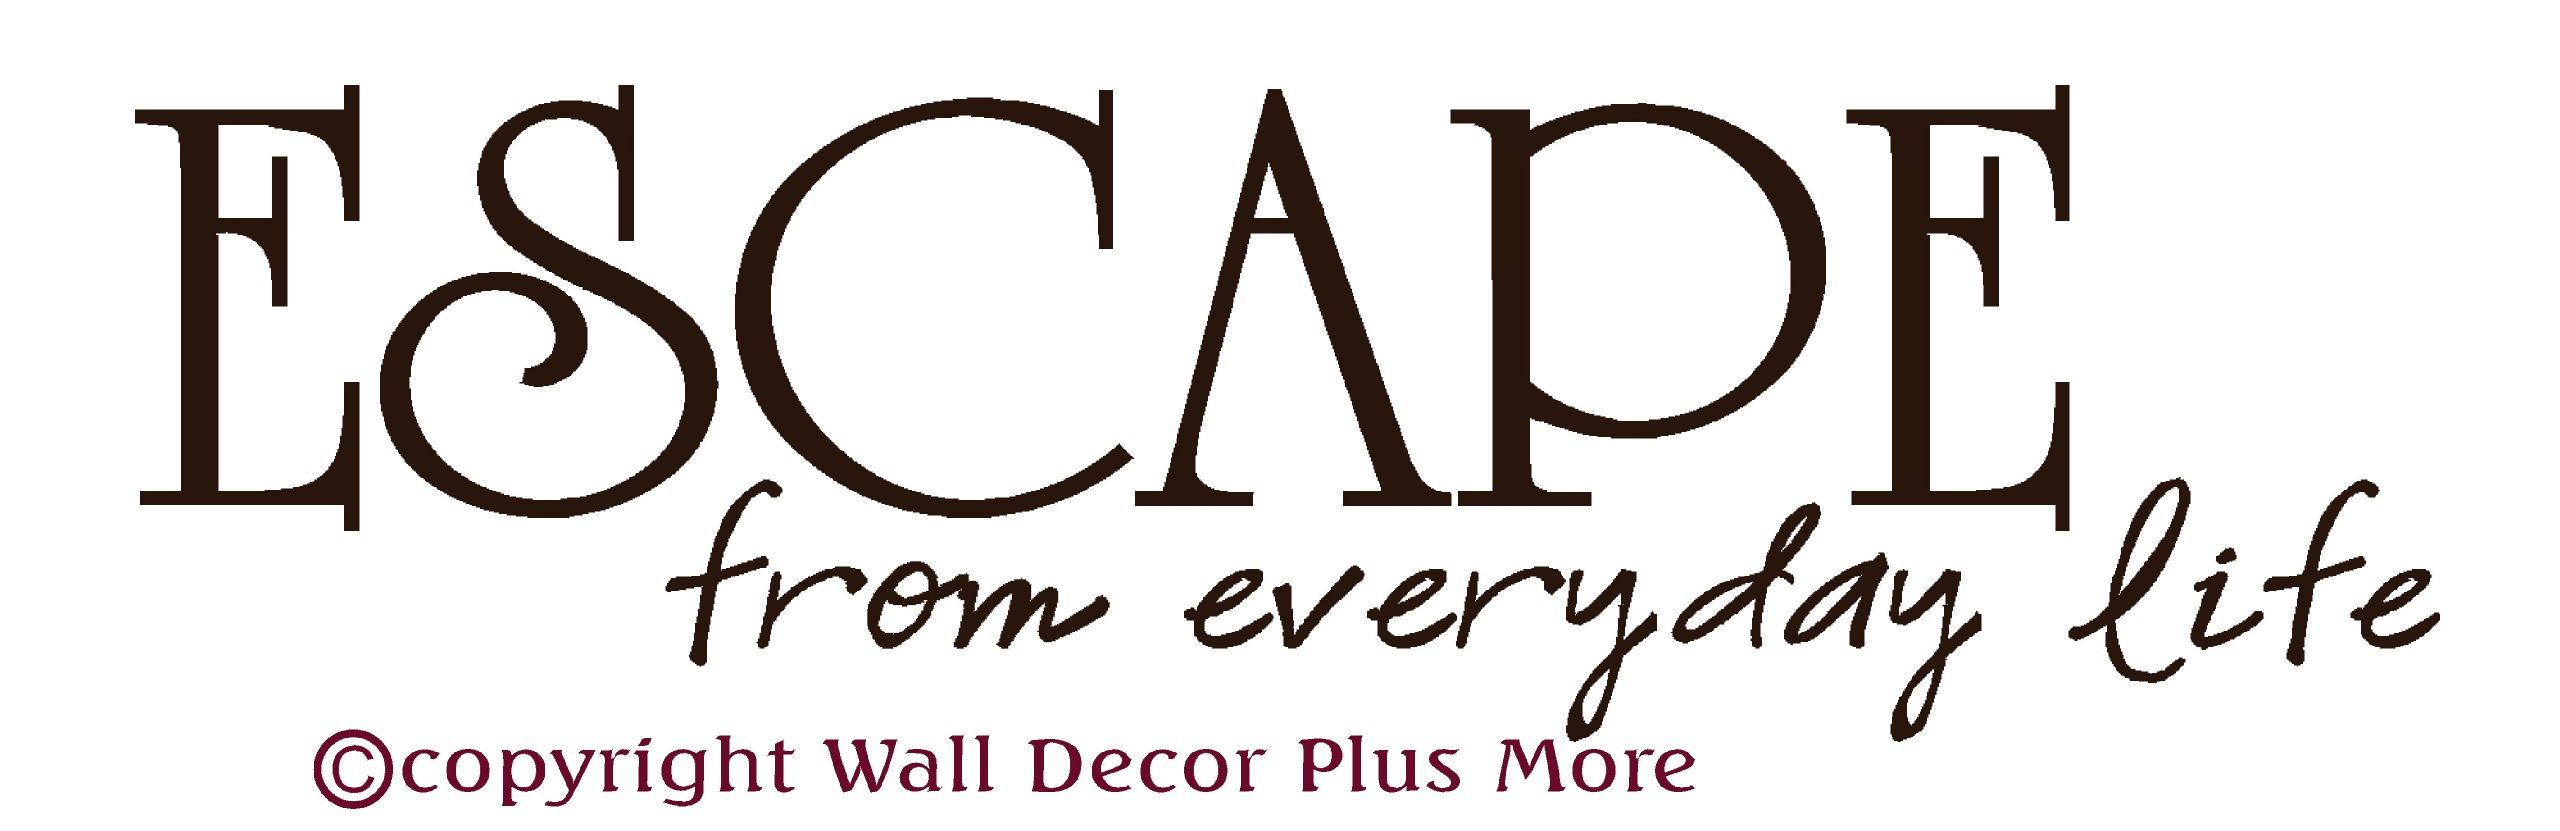 Wall Decor Plus More Escape From Everyday Life Bathroom Wall Sticker Vinyl Decal Quote 17.5x5 Chocolate Brown Chocolate